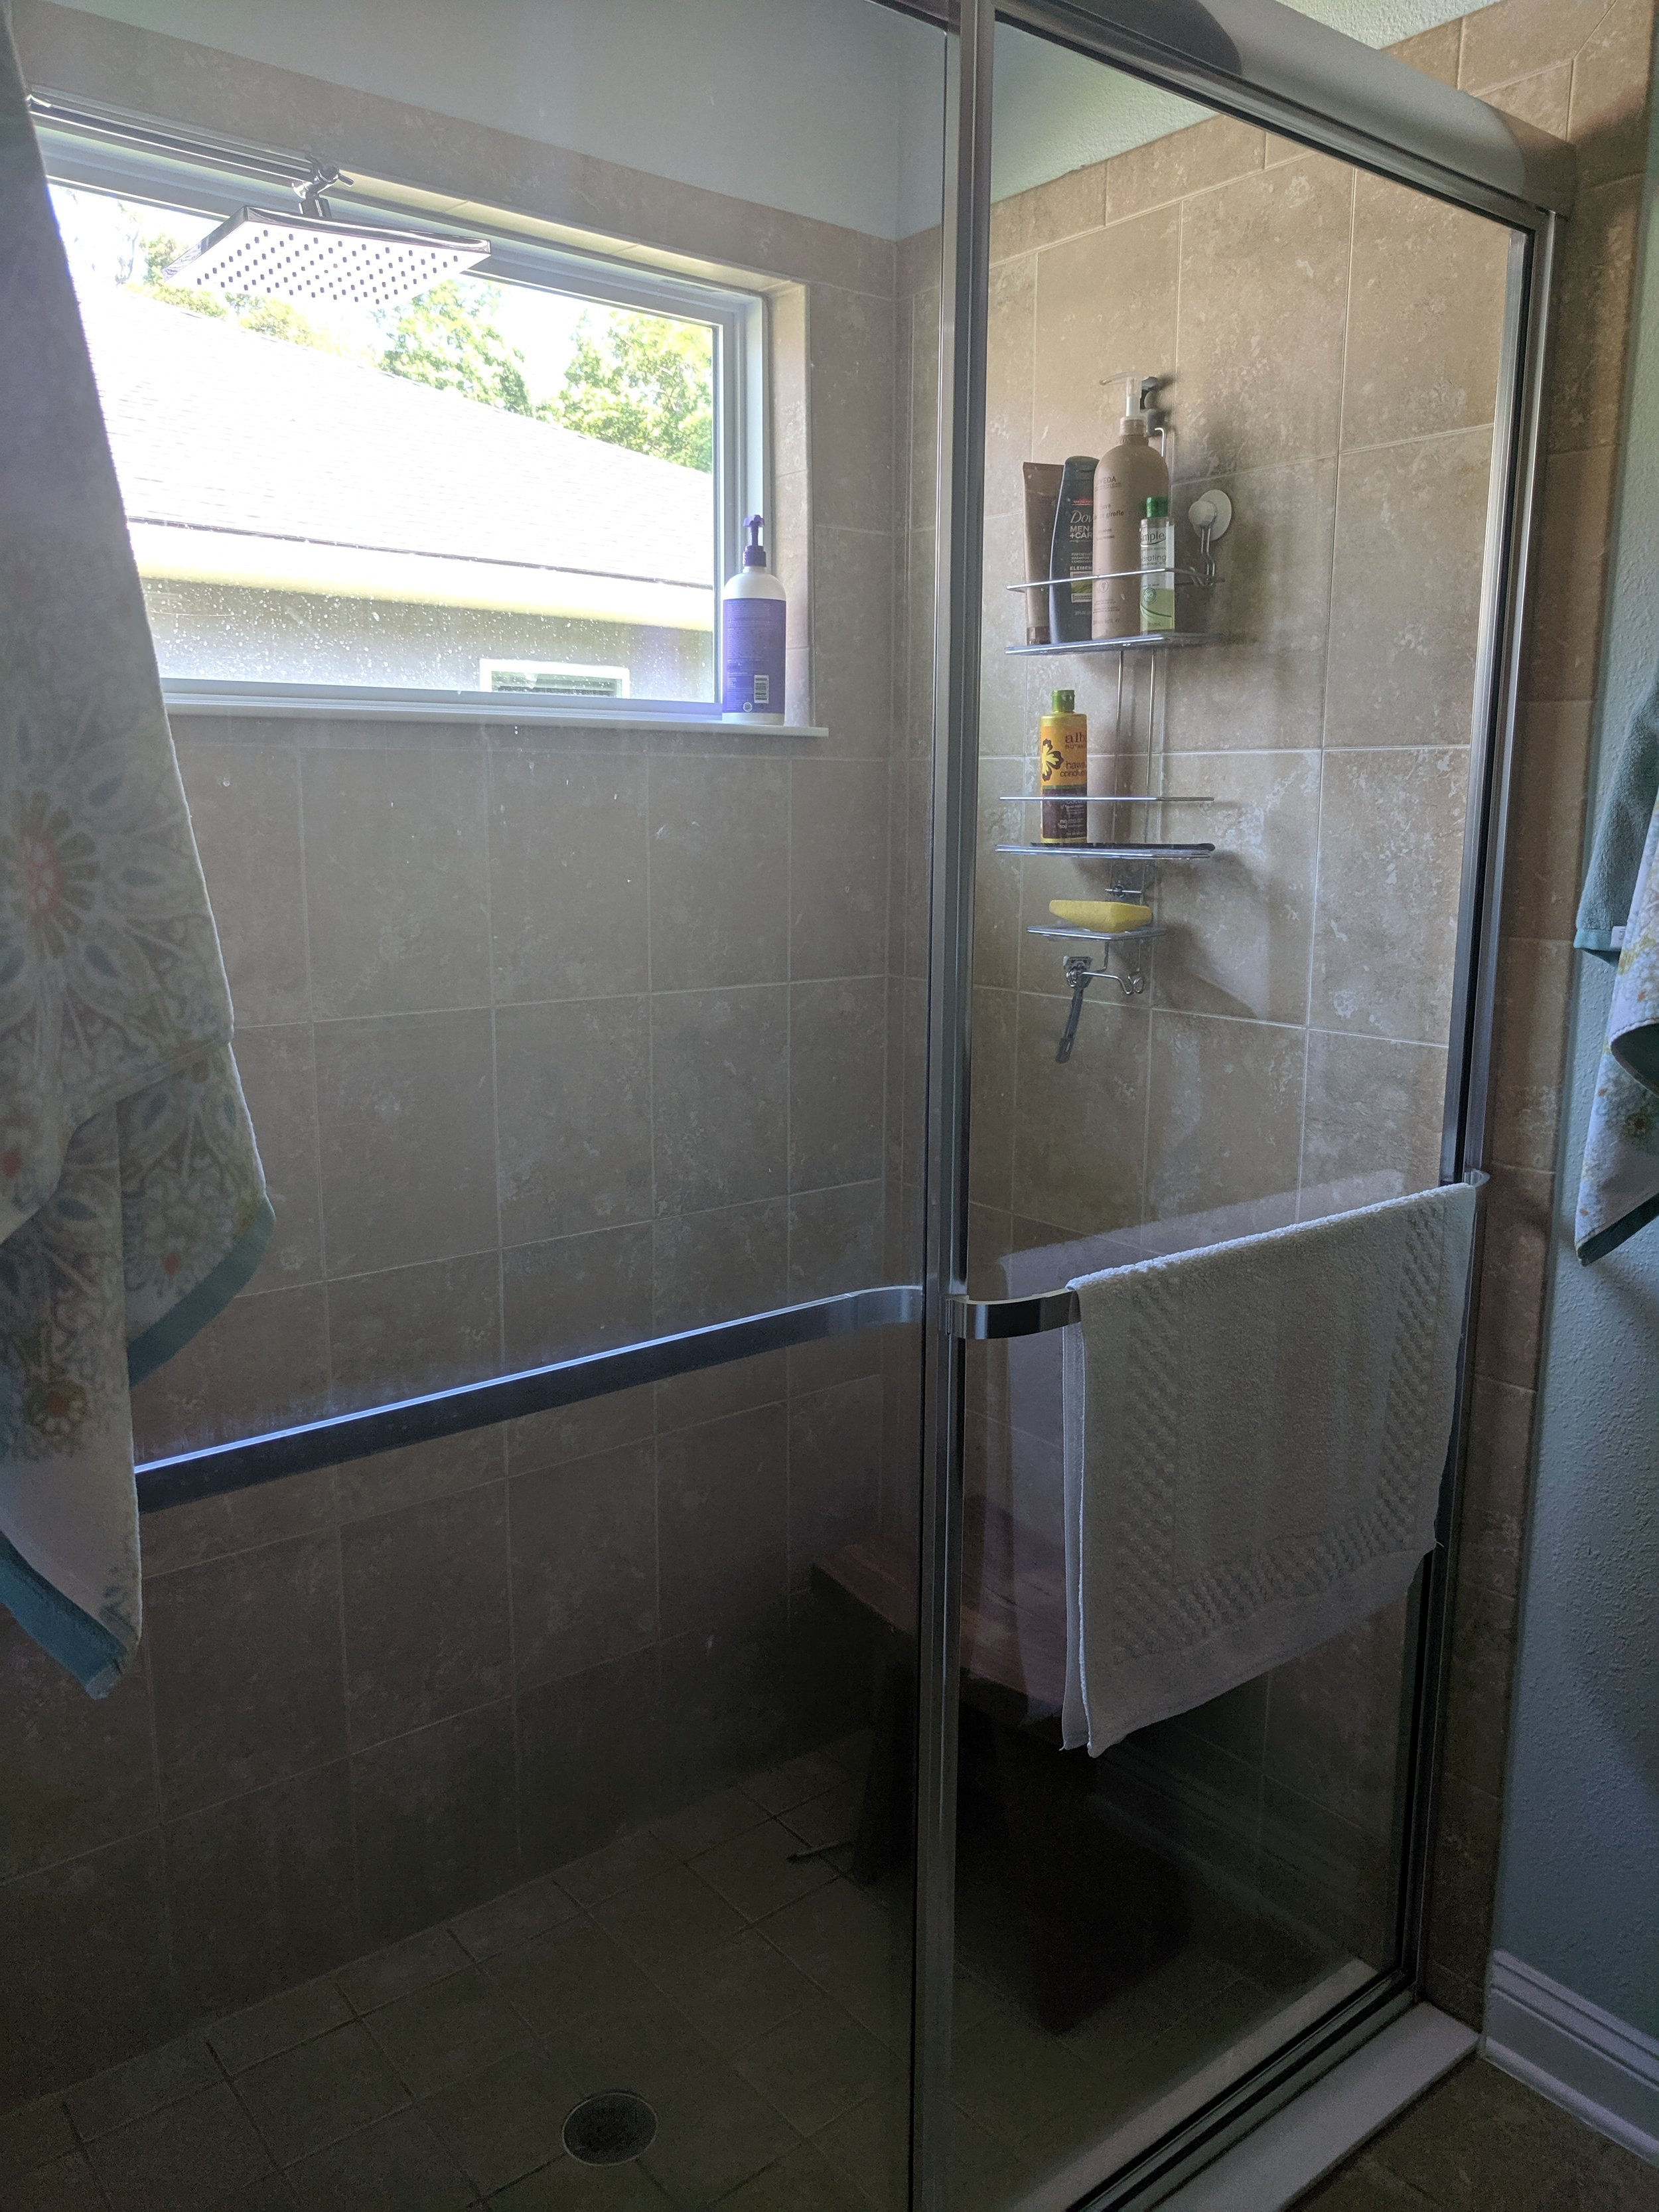 BEFORE: Saying goodbye to these shower doors!